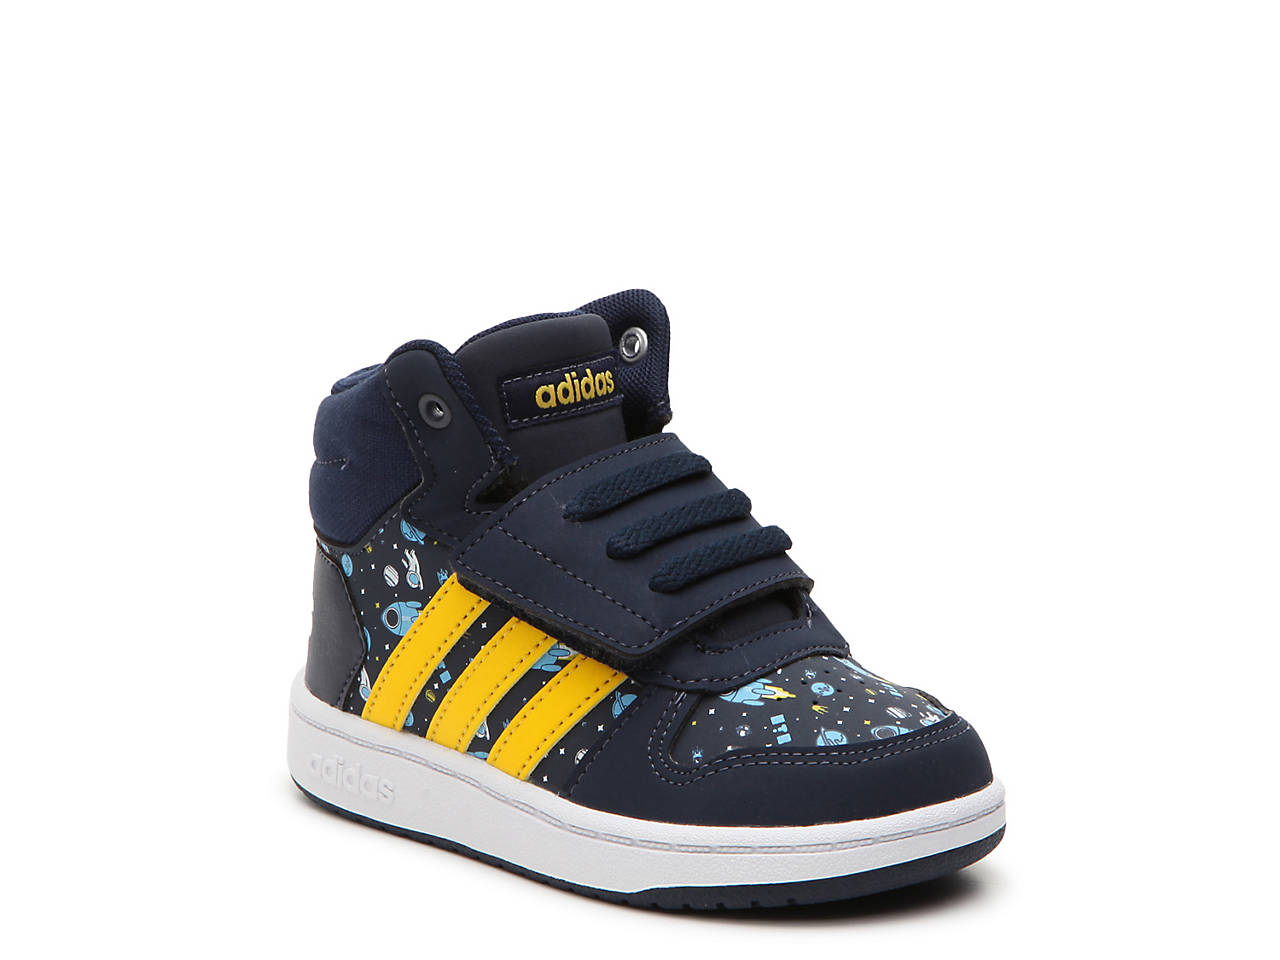 adidas Hoops Mid 2 Toddler High-Top Sneaker Kids Shoes  51d034a224279